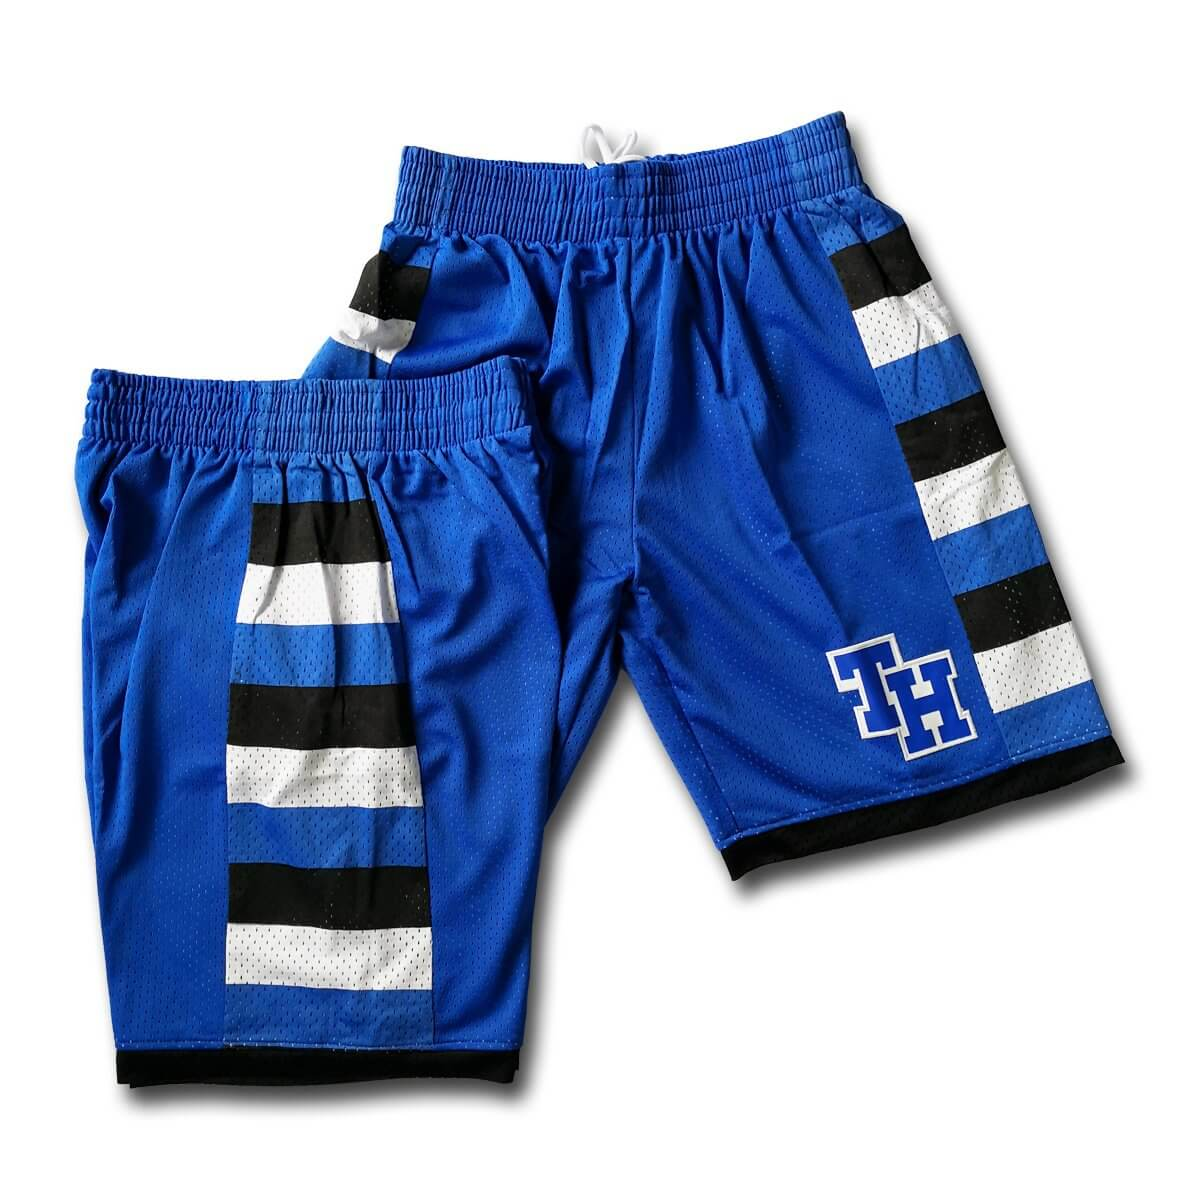 Nathan Scott One Tree Hill Basketball Shorts